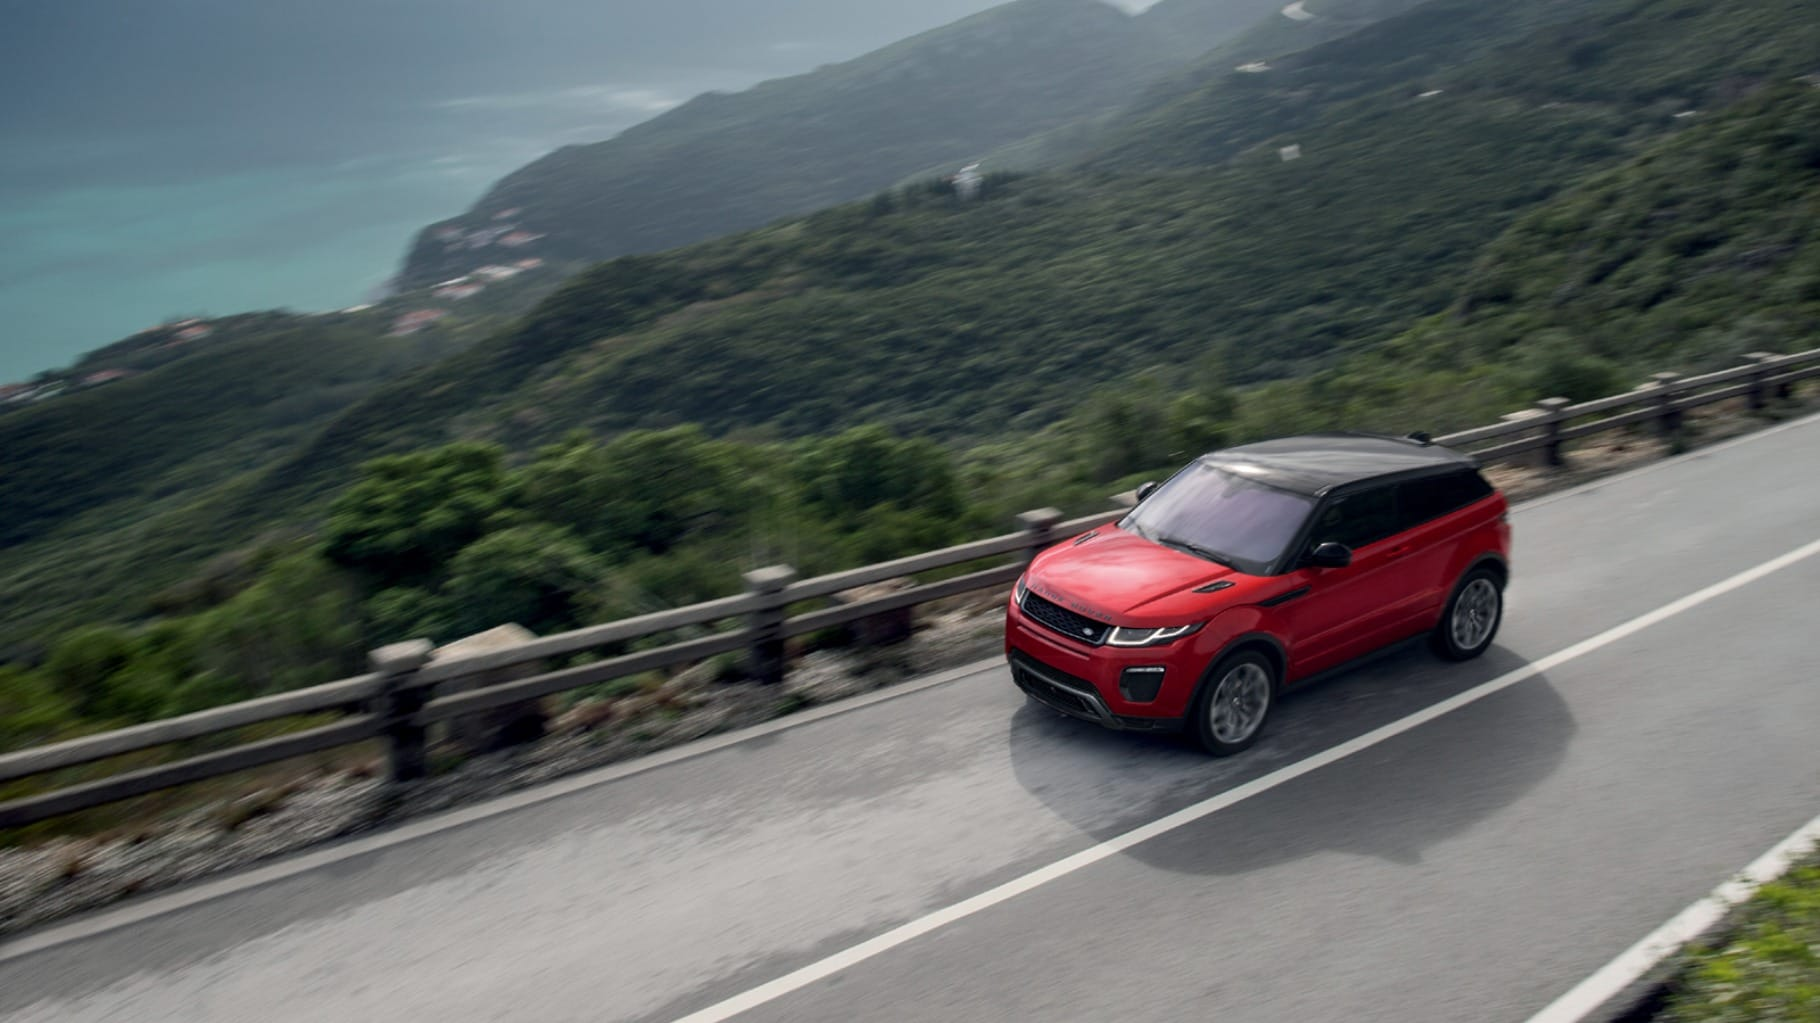 2016 Range Rover Evoque on road